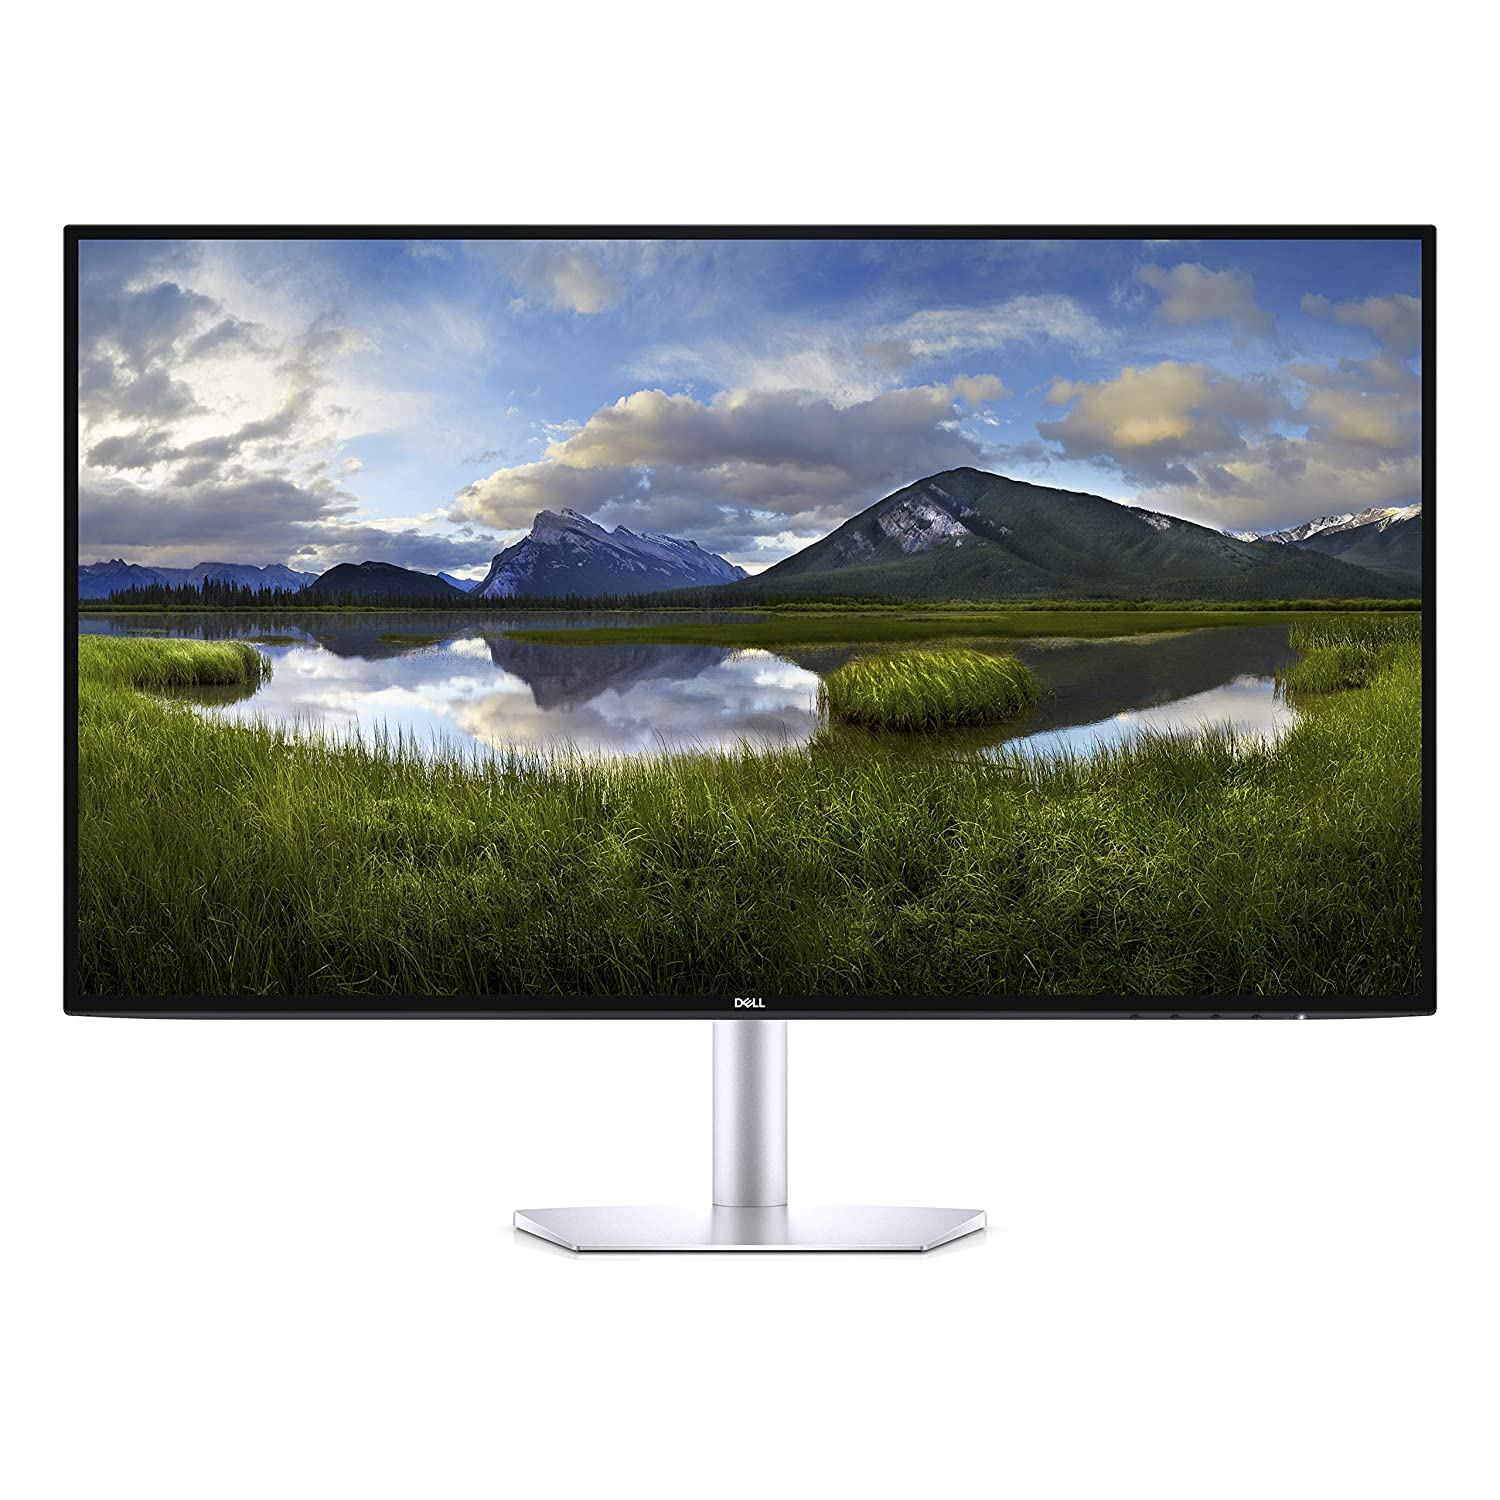 Dell S-Series 27-Inch Screen LED-Lit Monitor (S2719dc)